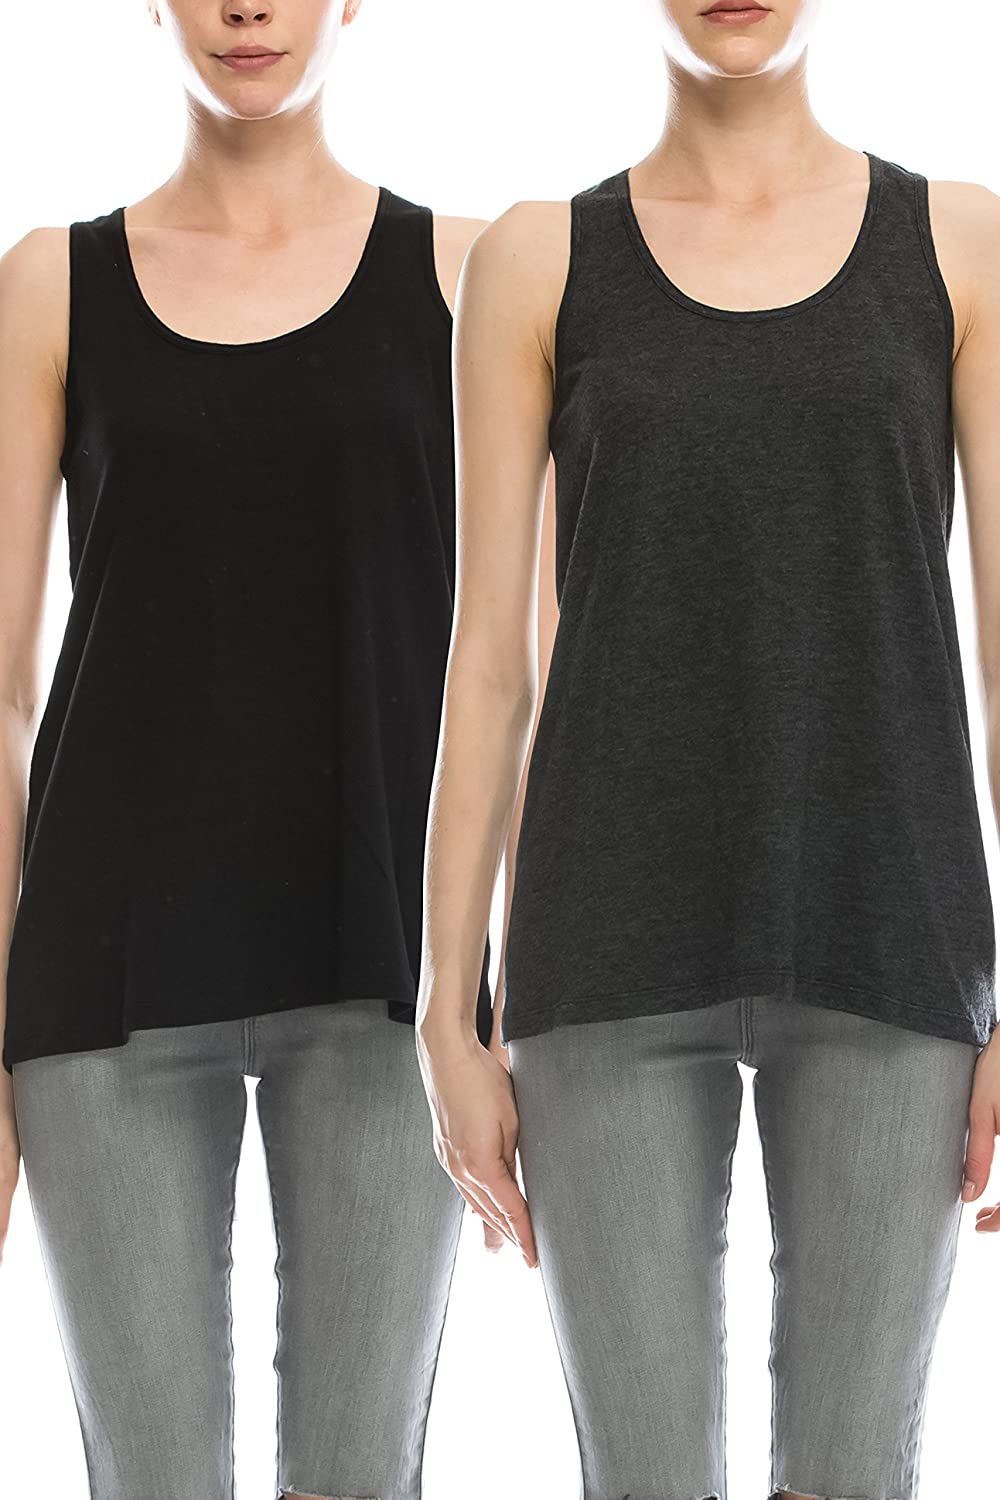 EttelLut Cotton Loose Fit Tank Tops Relaxed Athletic Workout Flowy for Women MP9717